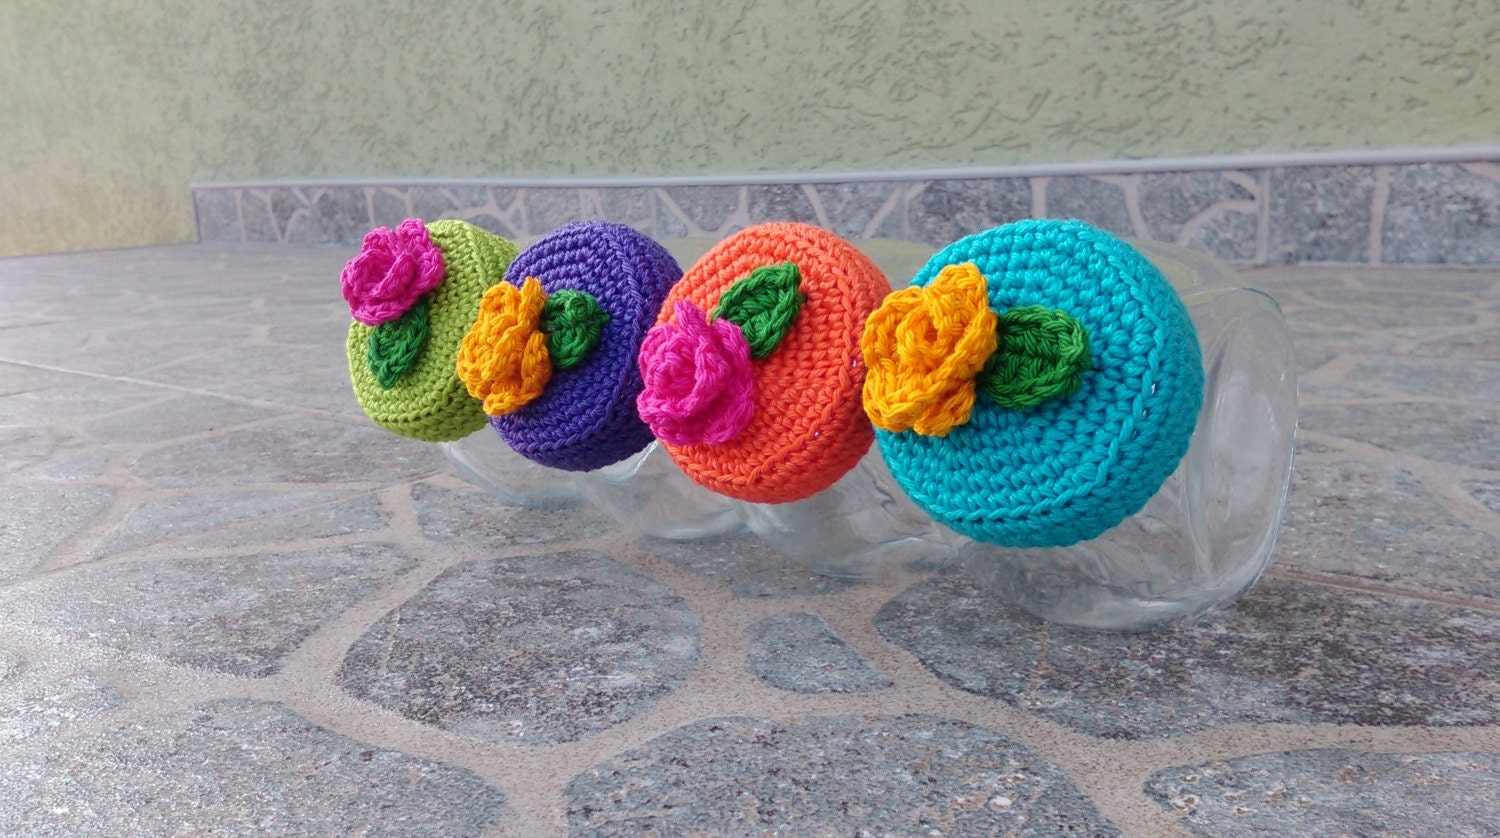 Crochet Patterns Jar Covers : Crochet jar lid covers PATTERN IKEA by CrochetCookies on Etsy